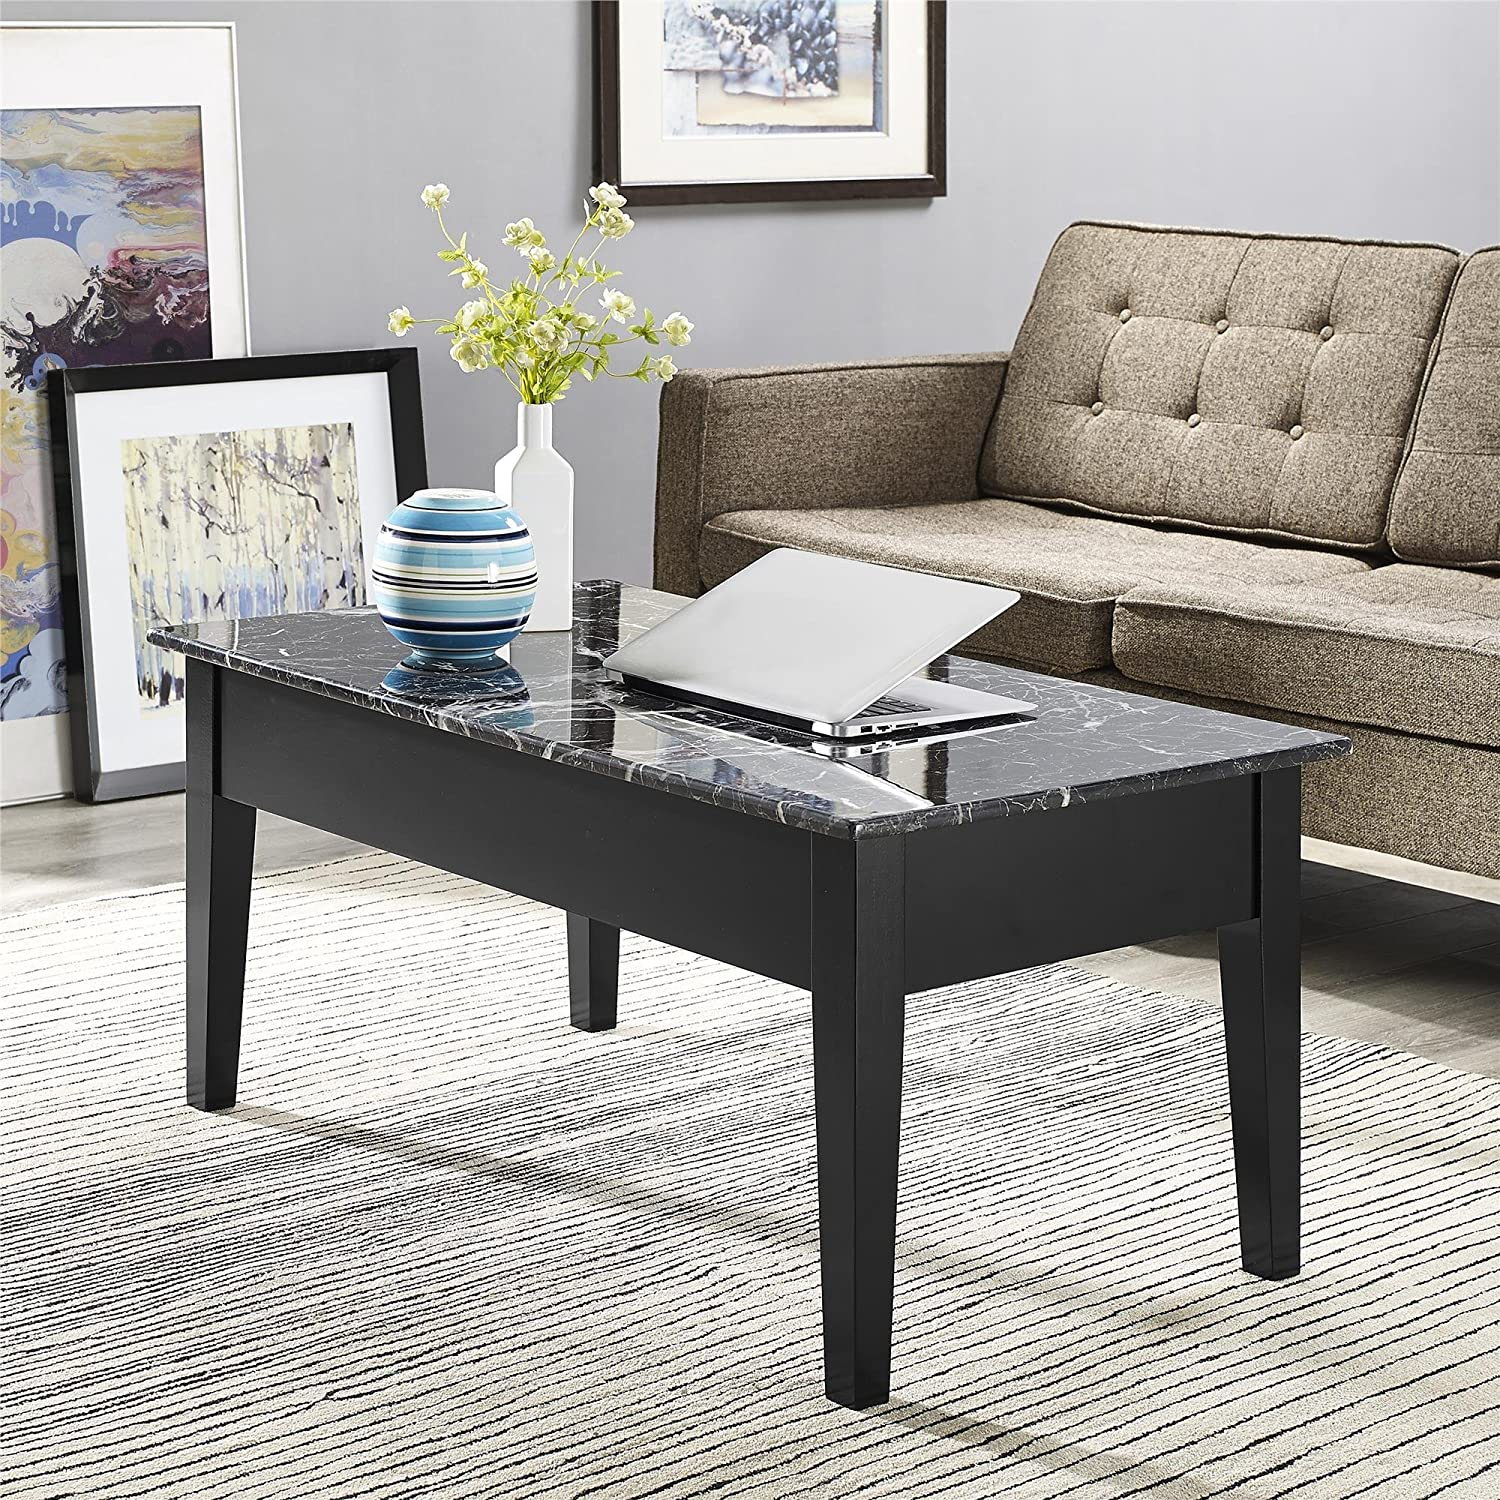 Faux White Marble Coffee Table Set: Dorel Living Faux Marble Lift Top Storage Coffee Table